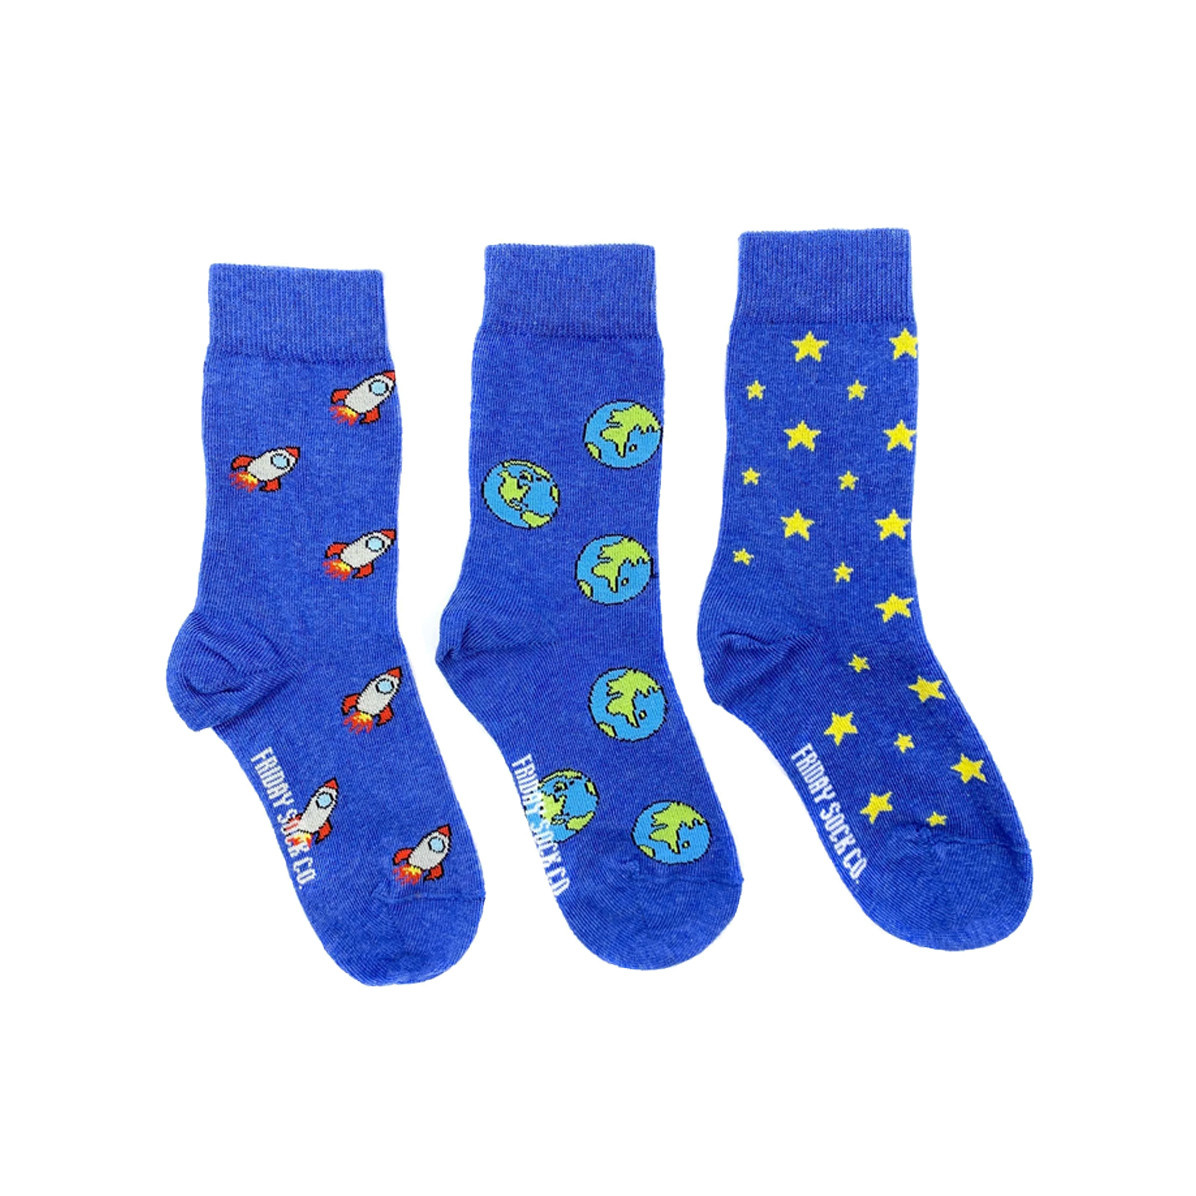 Friday Sock Co. Friday Sock Co. Kids Space Crew